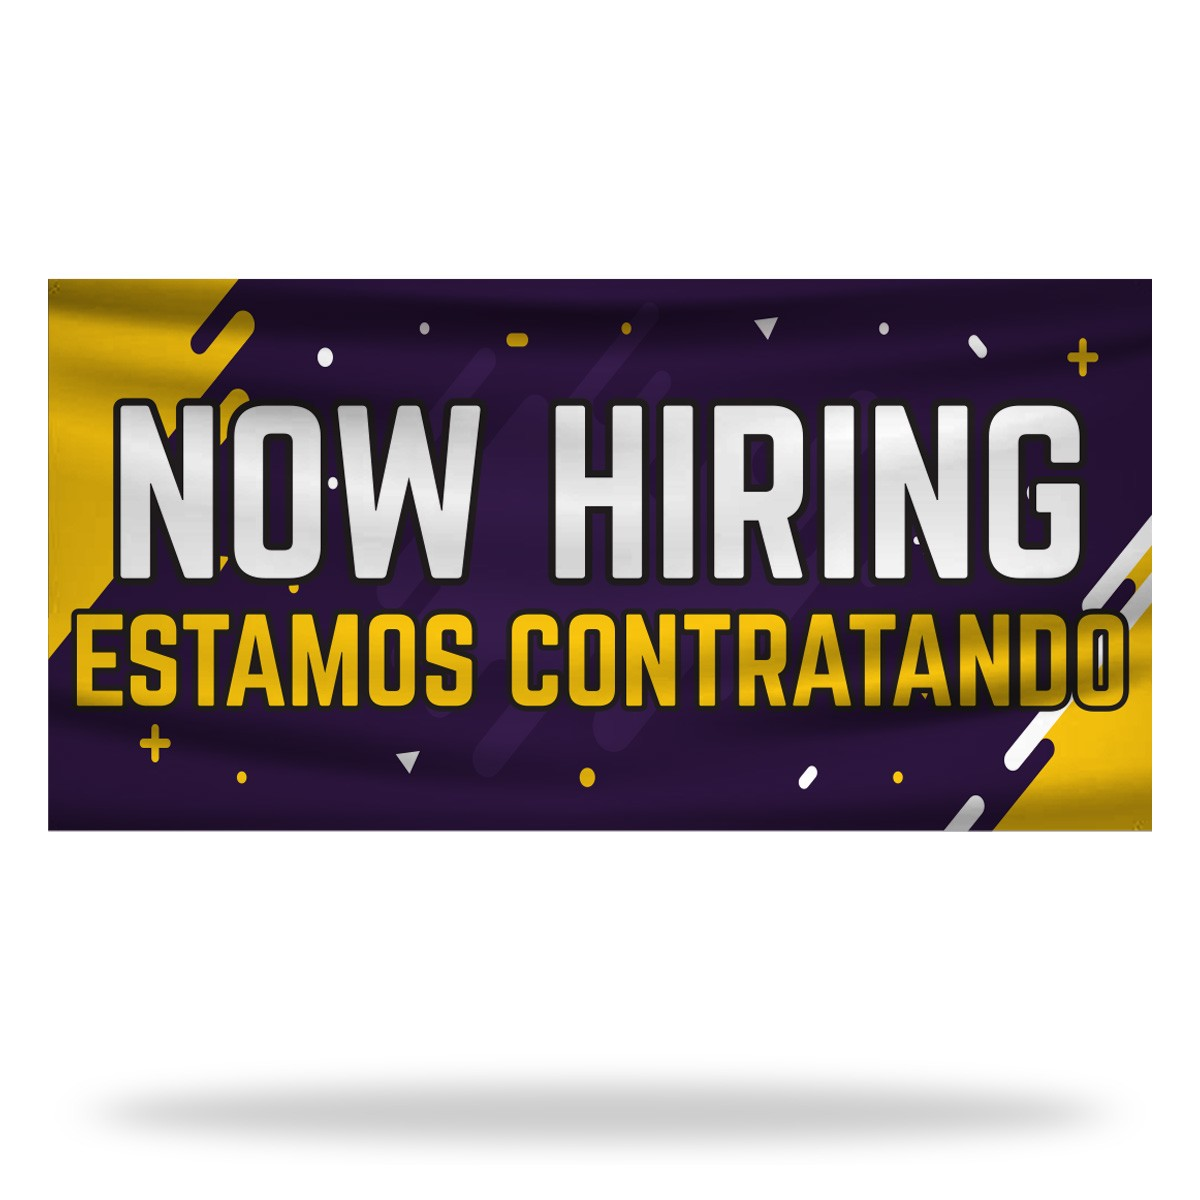 Spanish Now Hiring Flags & Banners Design